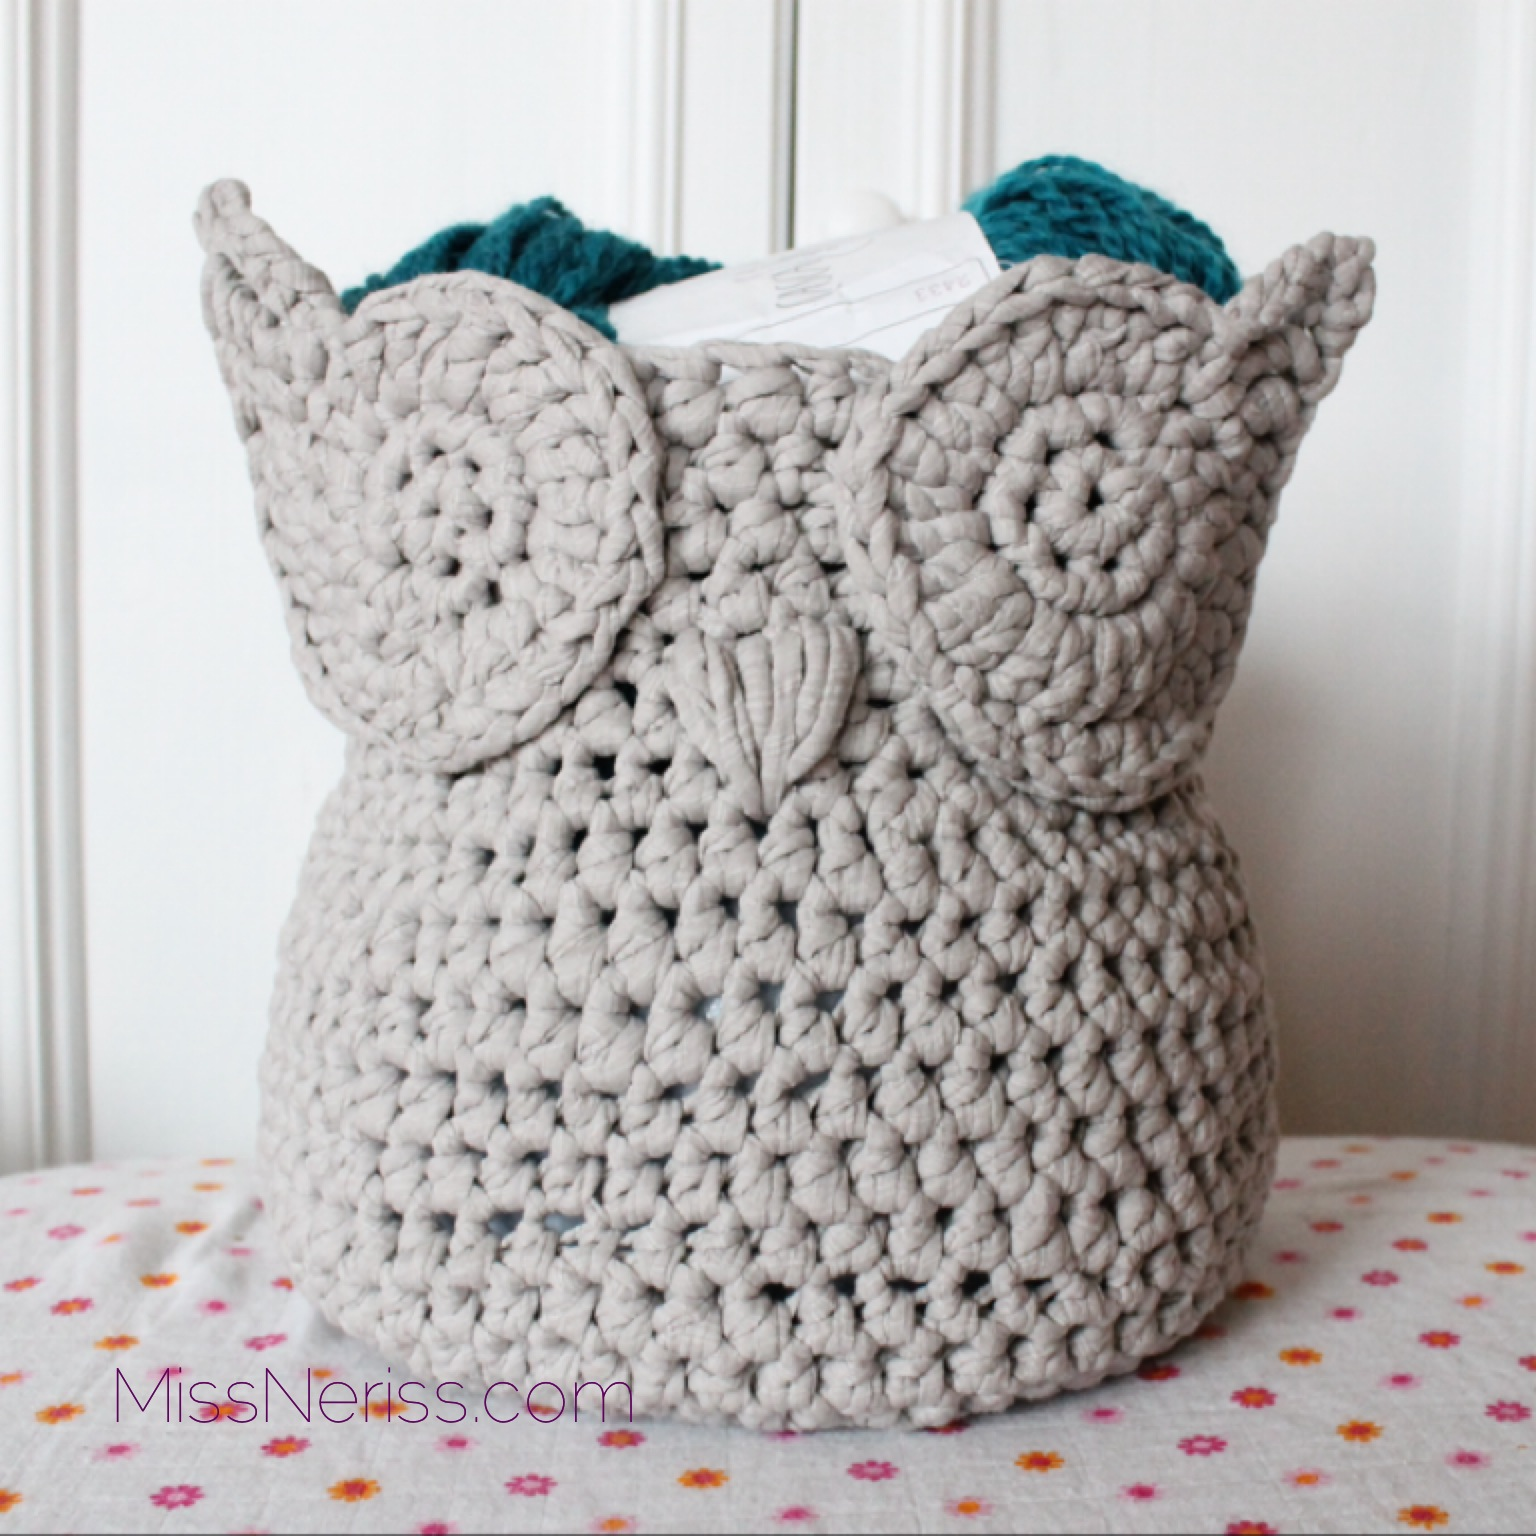 Free Crochet Patterns Zpagetti : Owl Zpagetti Yarn Basket MissNeriss